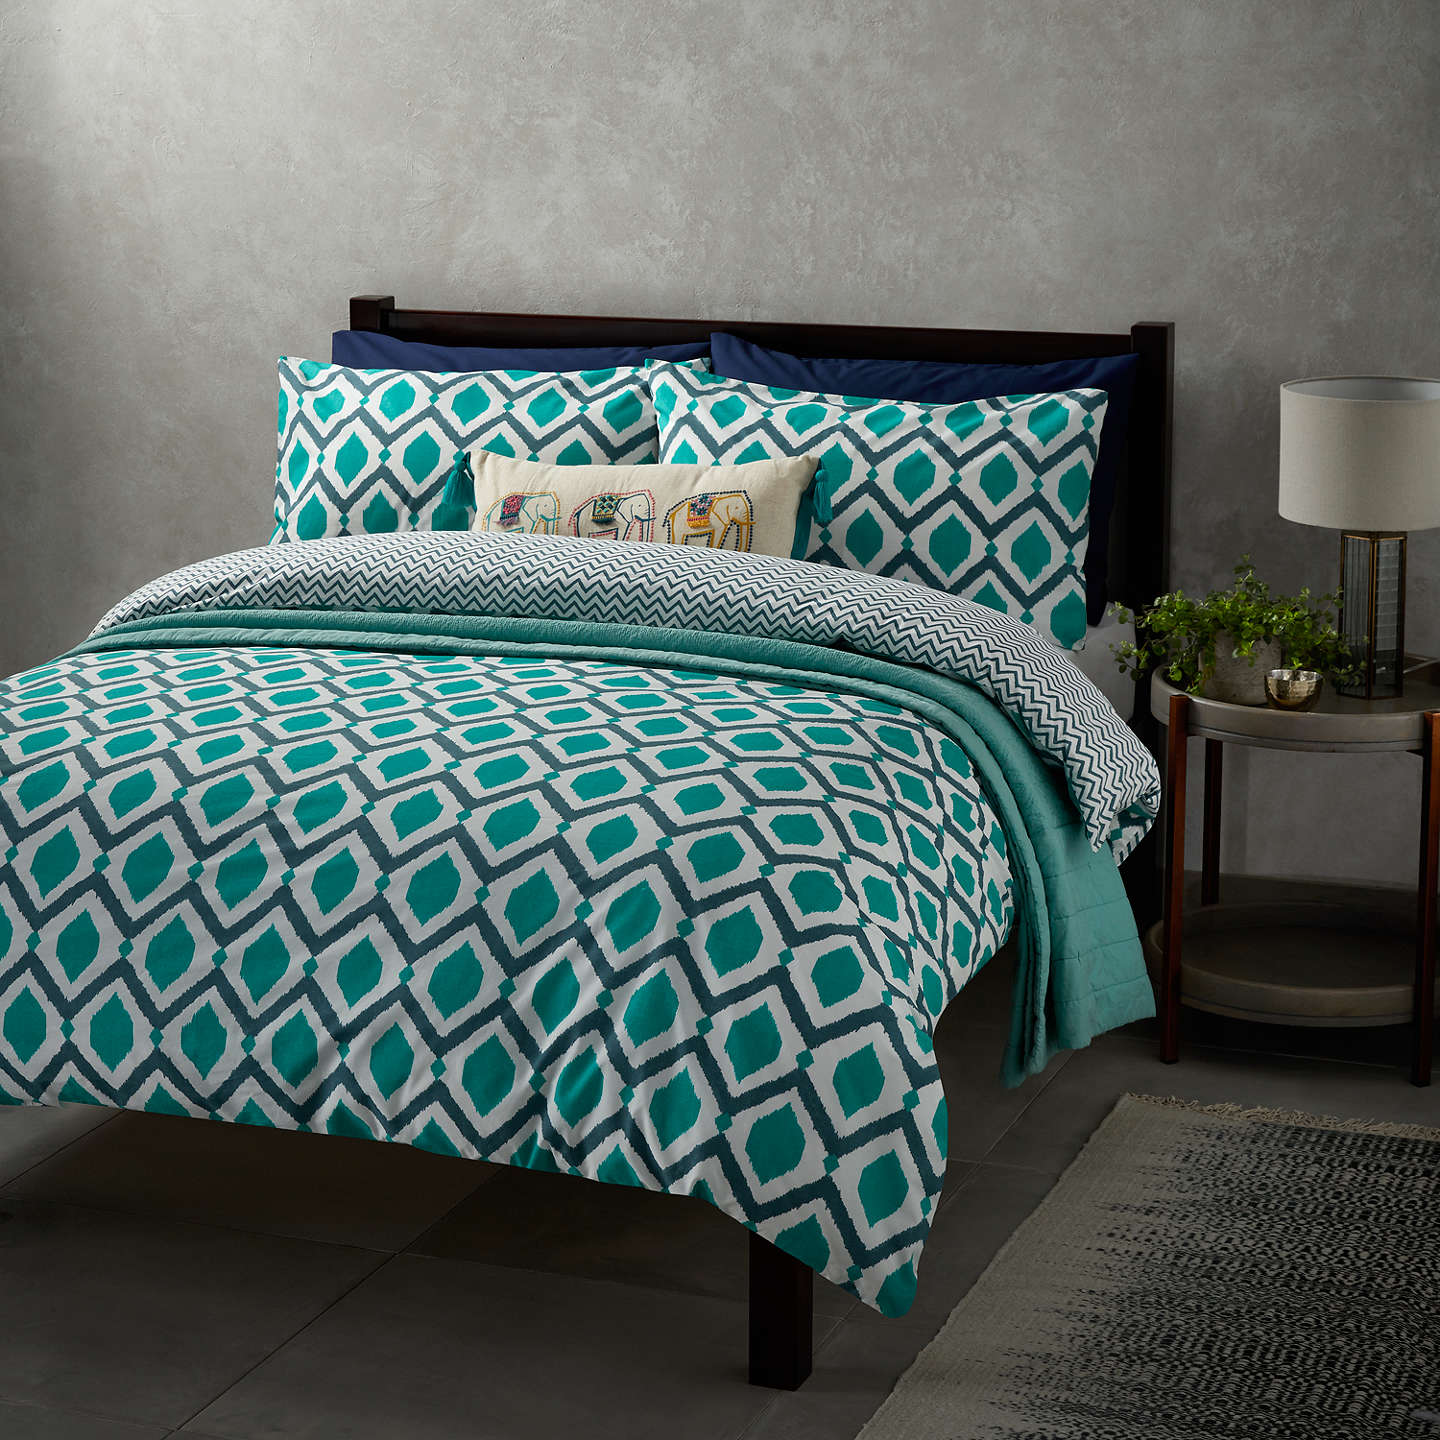 queen dolce cotton size piece alternative luxury views p set houndstooth bedding htm duvet check cover mela